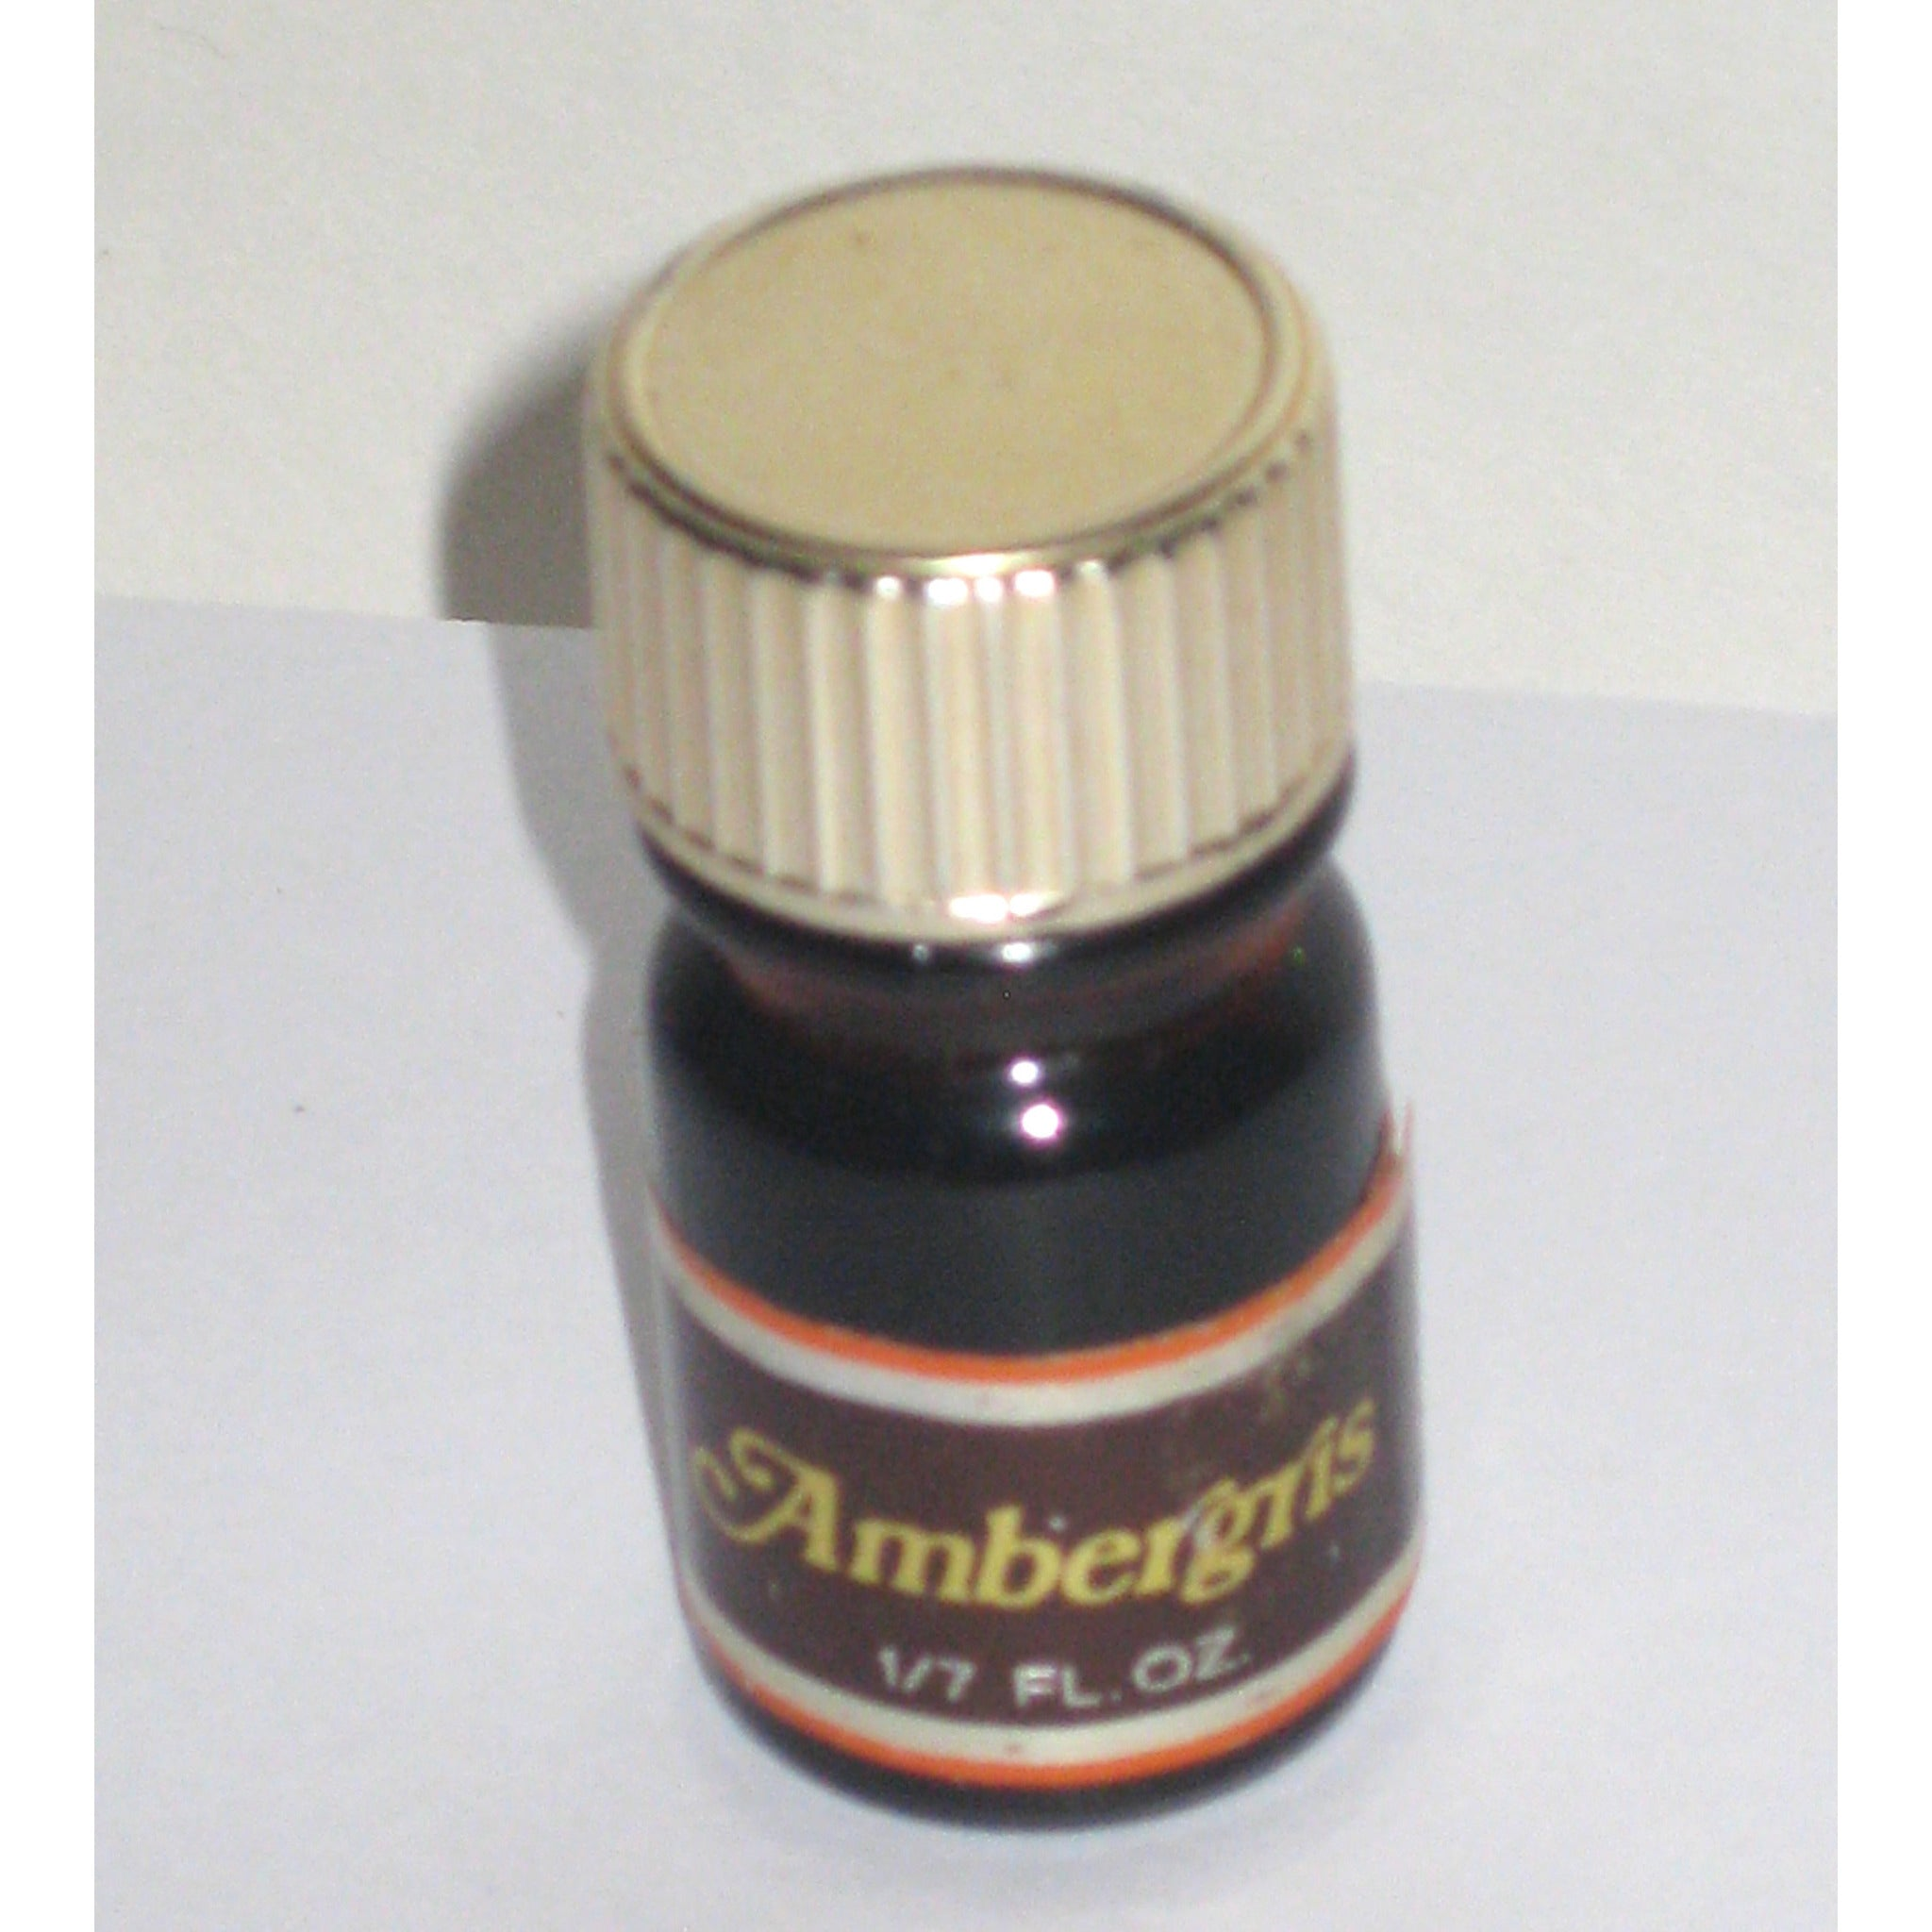 Vintage The Perfumer's Workshop Ltd. Ambergris